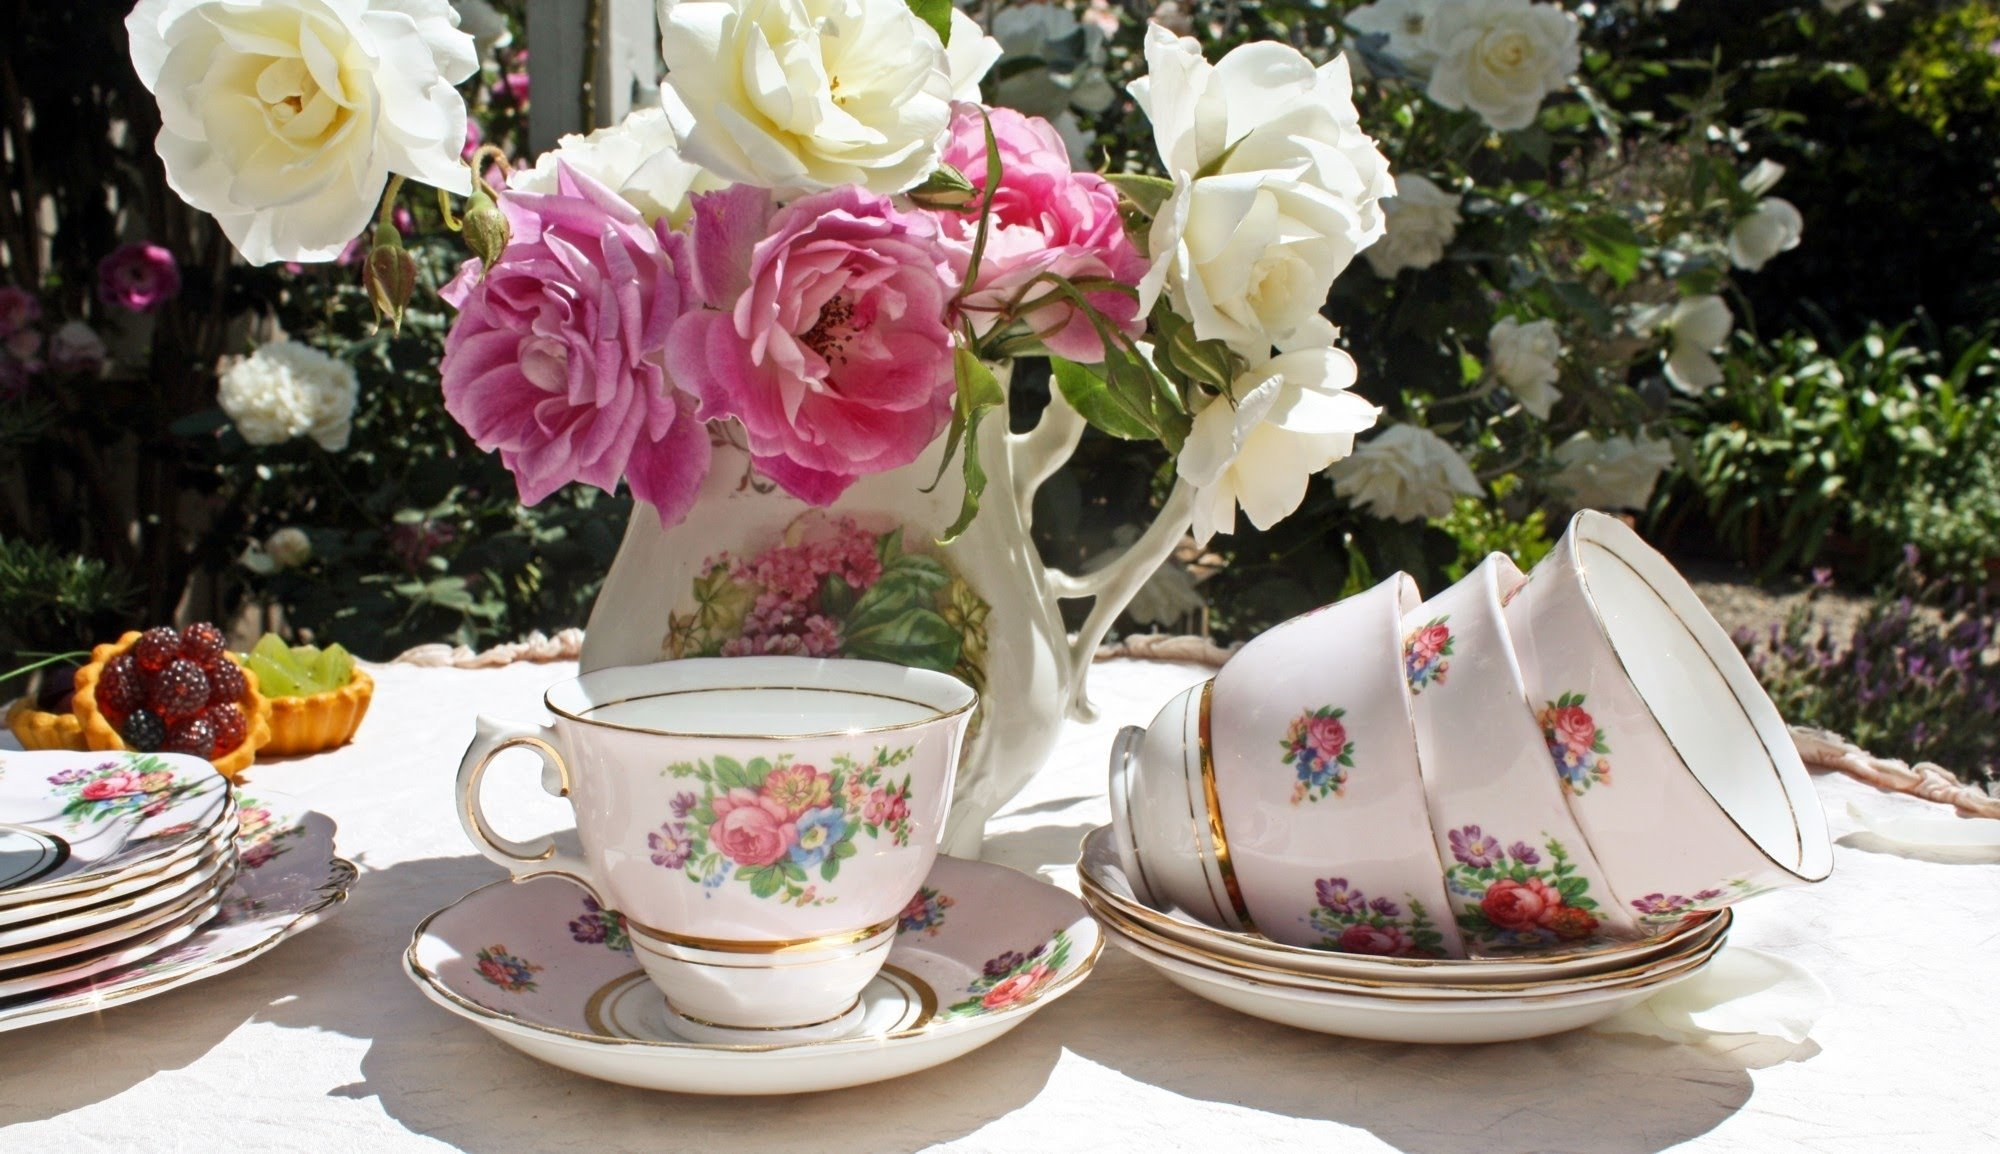 10 Ideal Tea Party Ideas For Women simple tea party food ideas youtube 2020